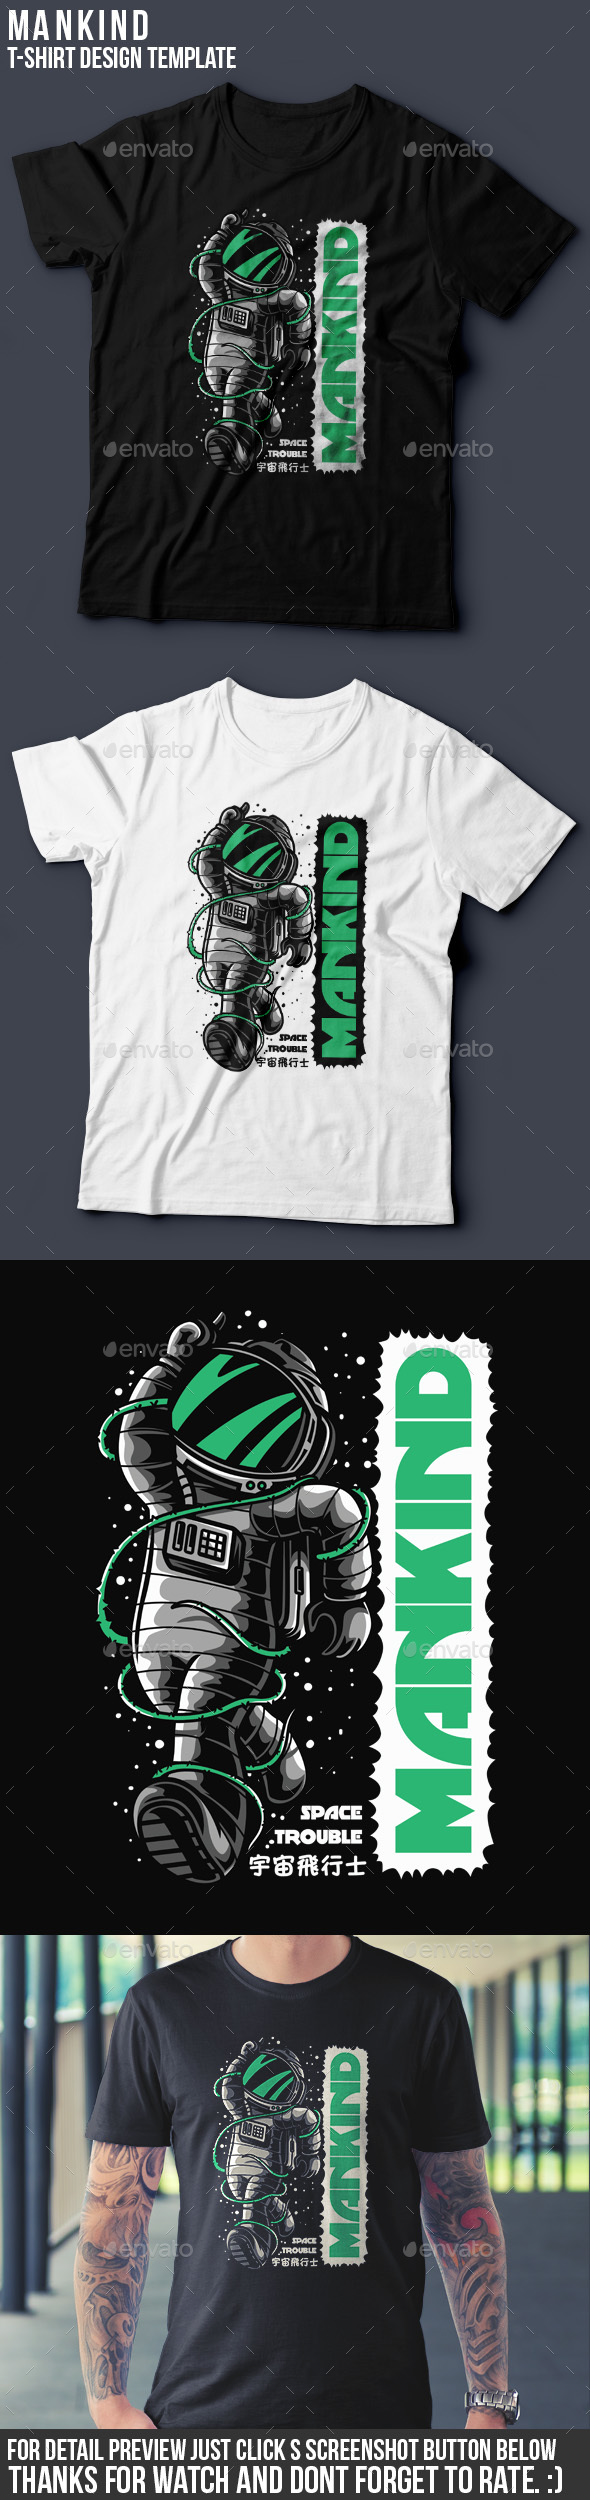 Mankind T-Shirt Design - Funny Designs